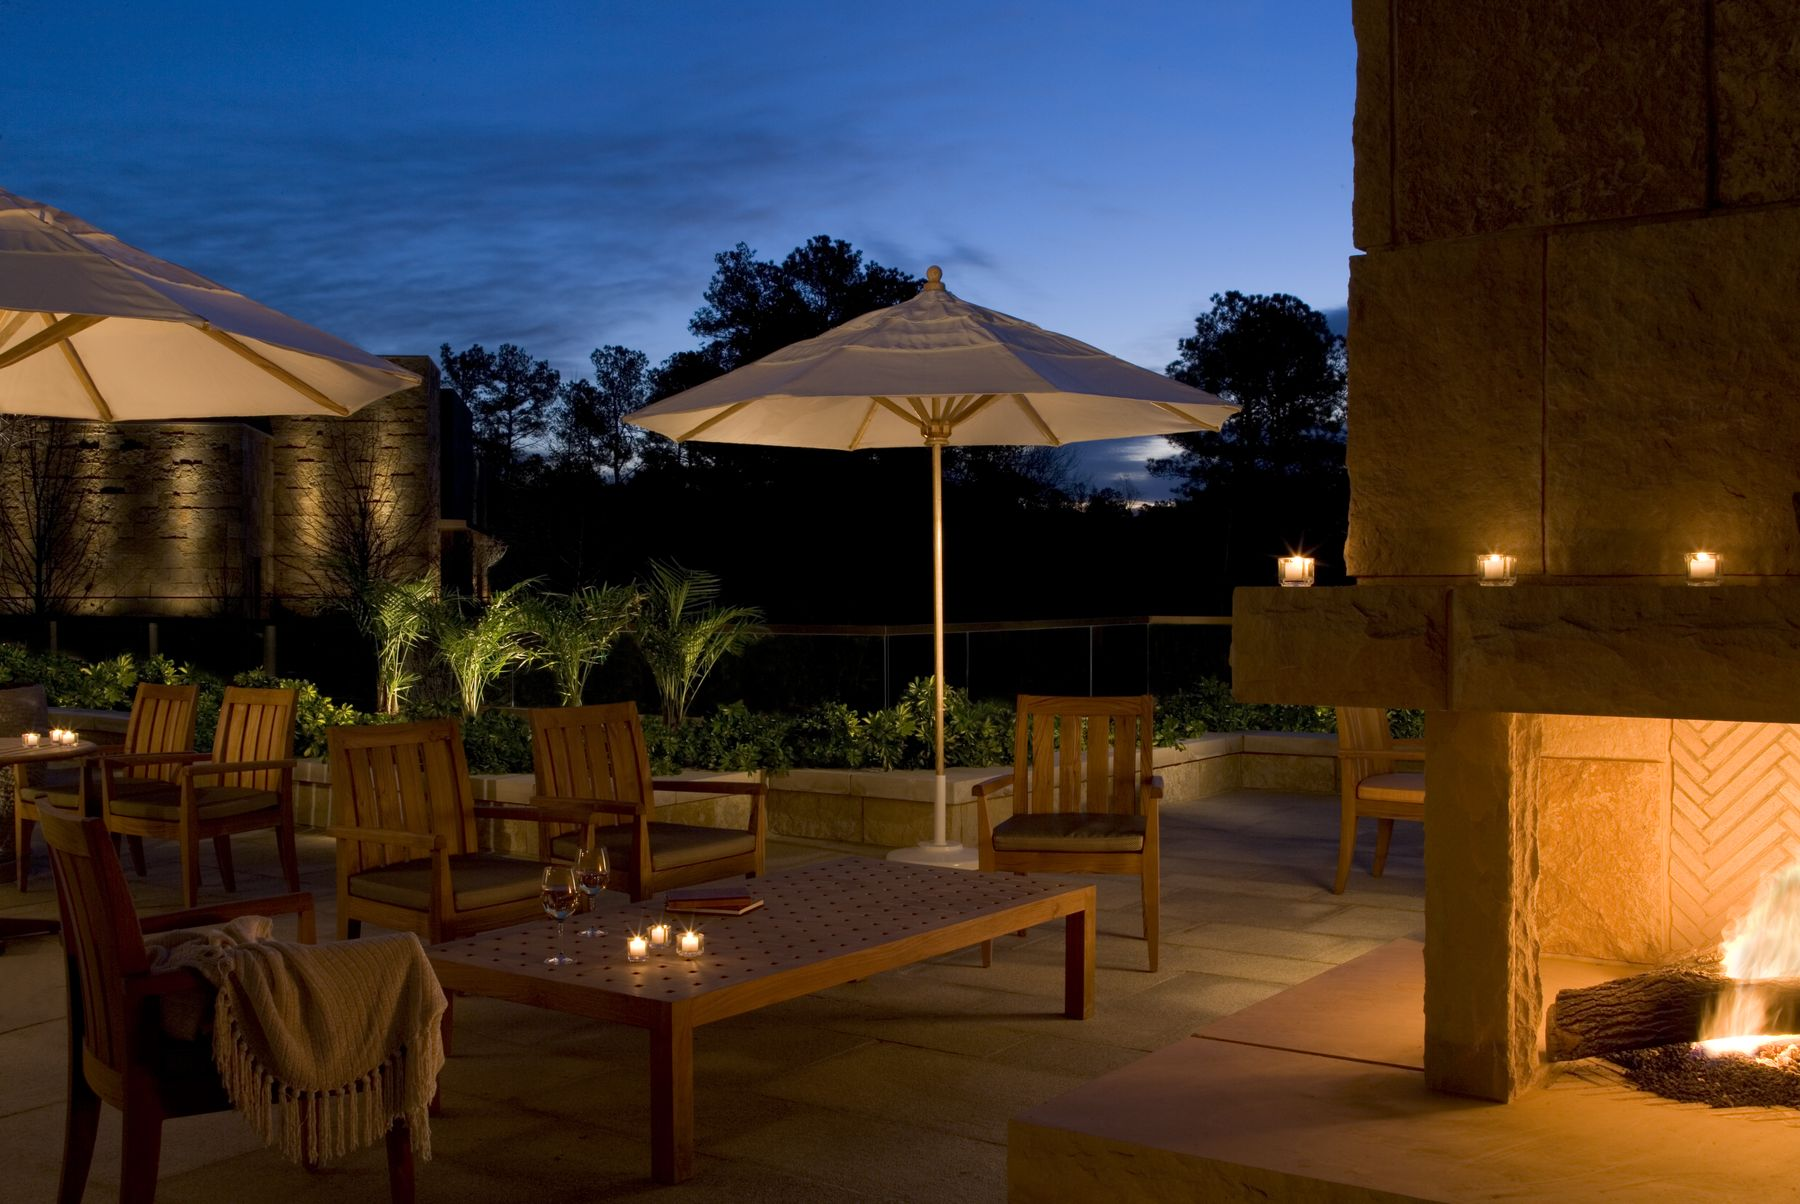 outdoor terrace with umbrellas at night